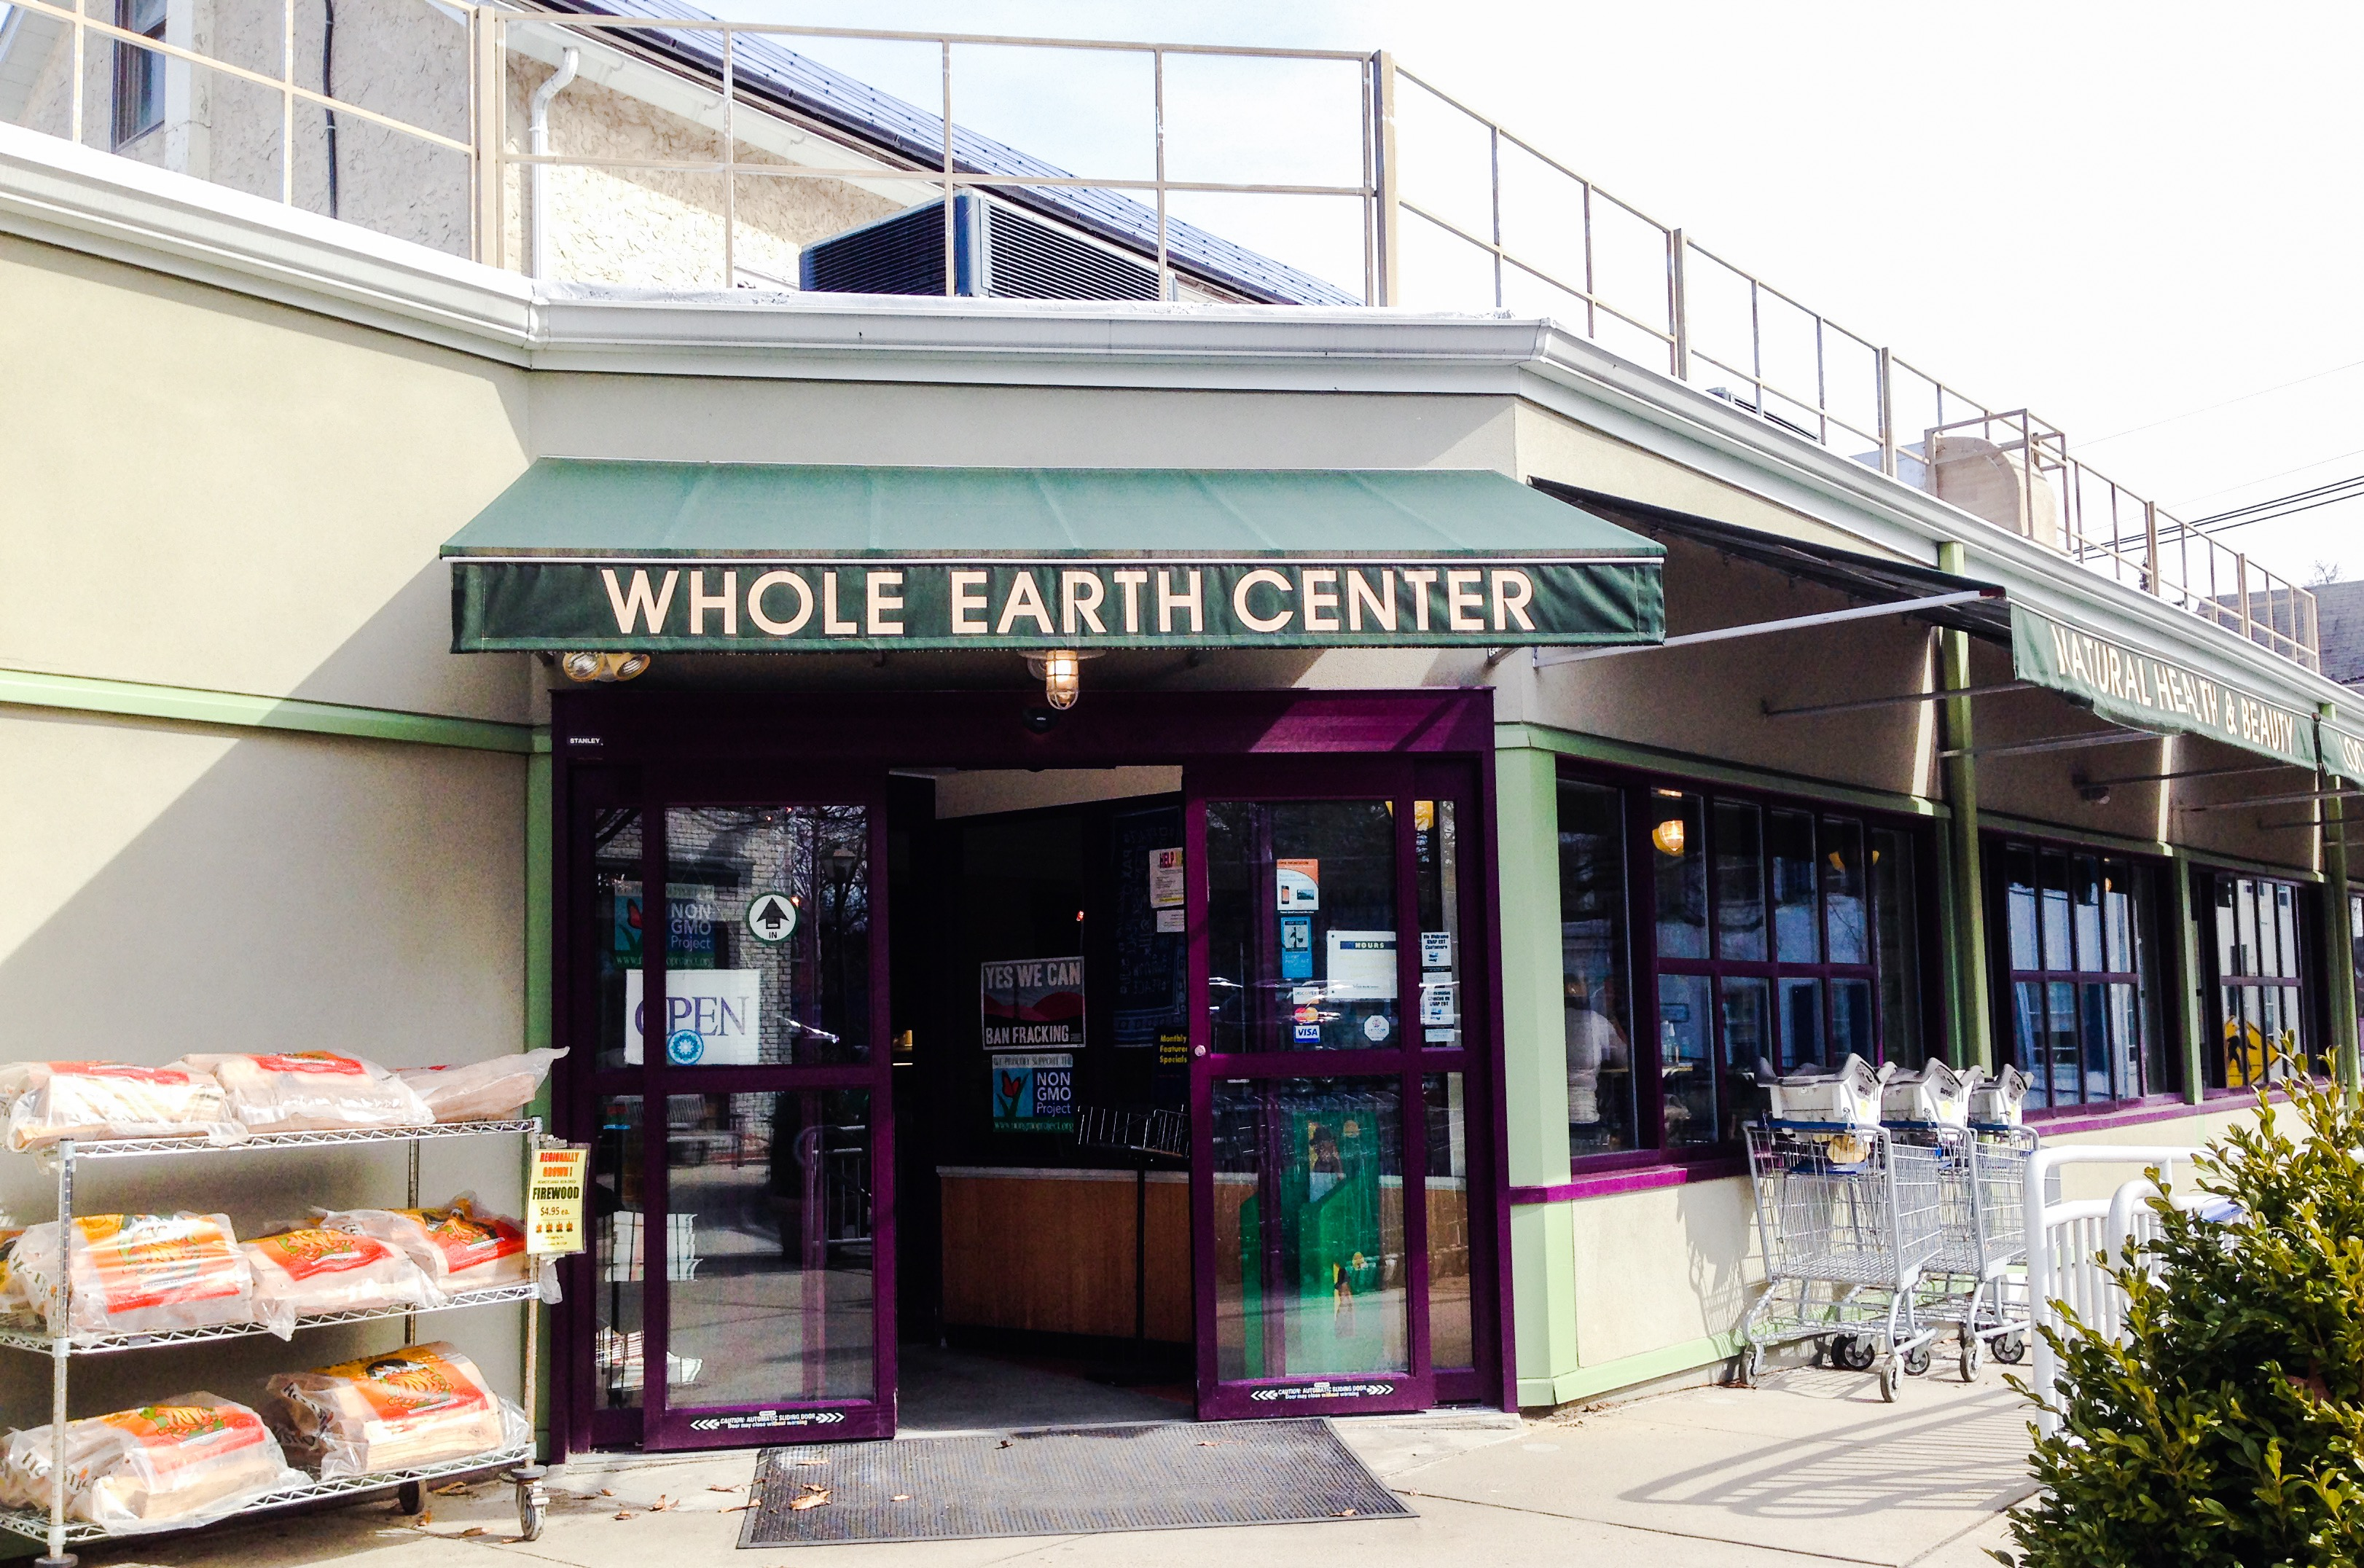 This is a picture of the Whole Earth Center.